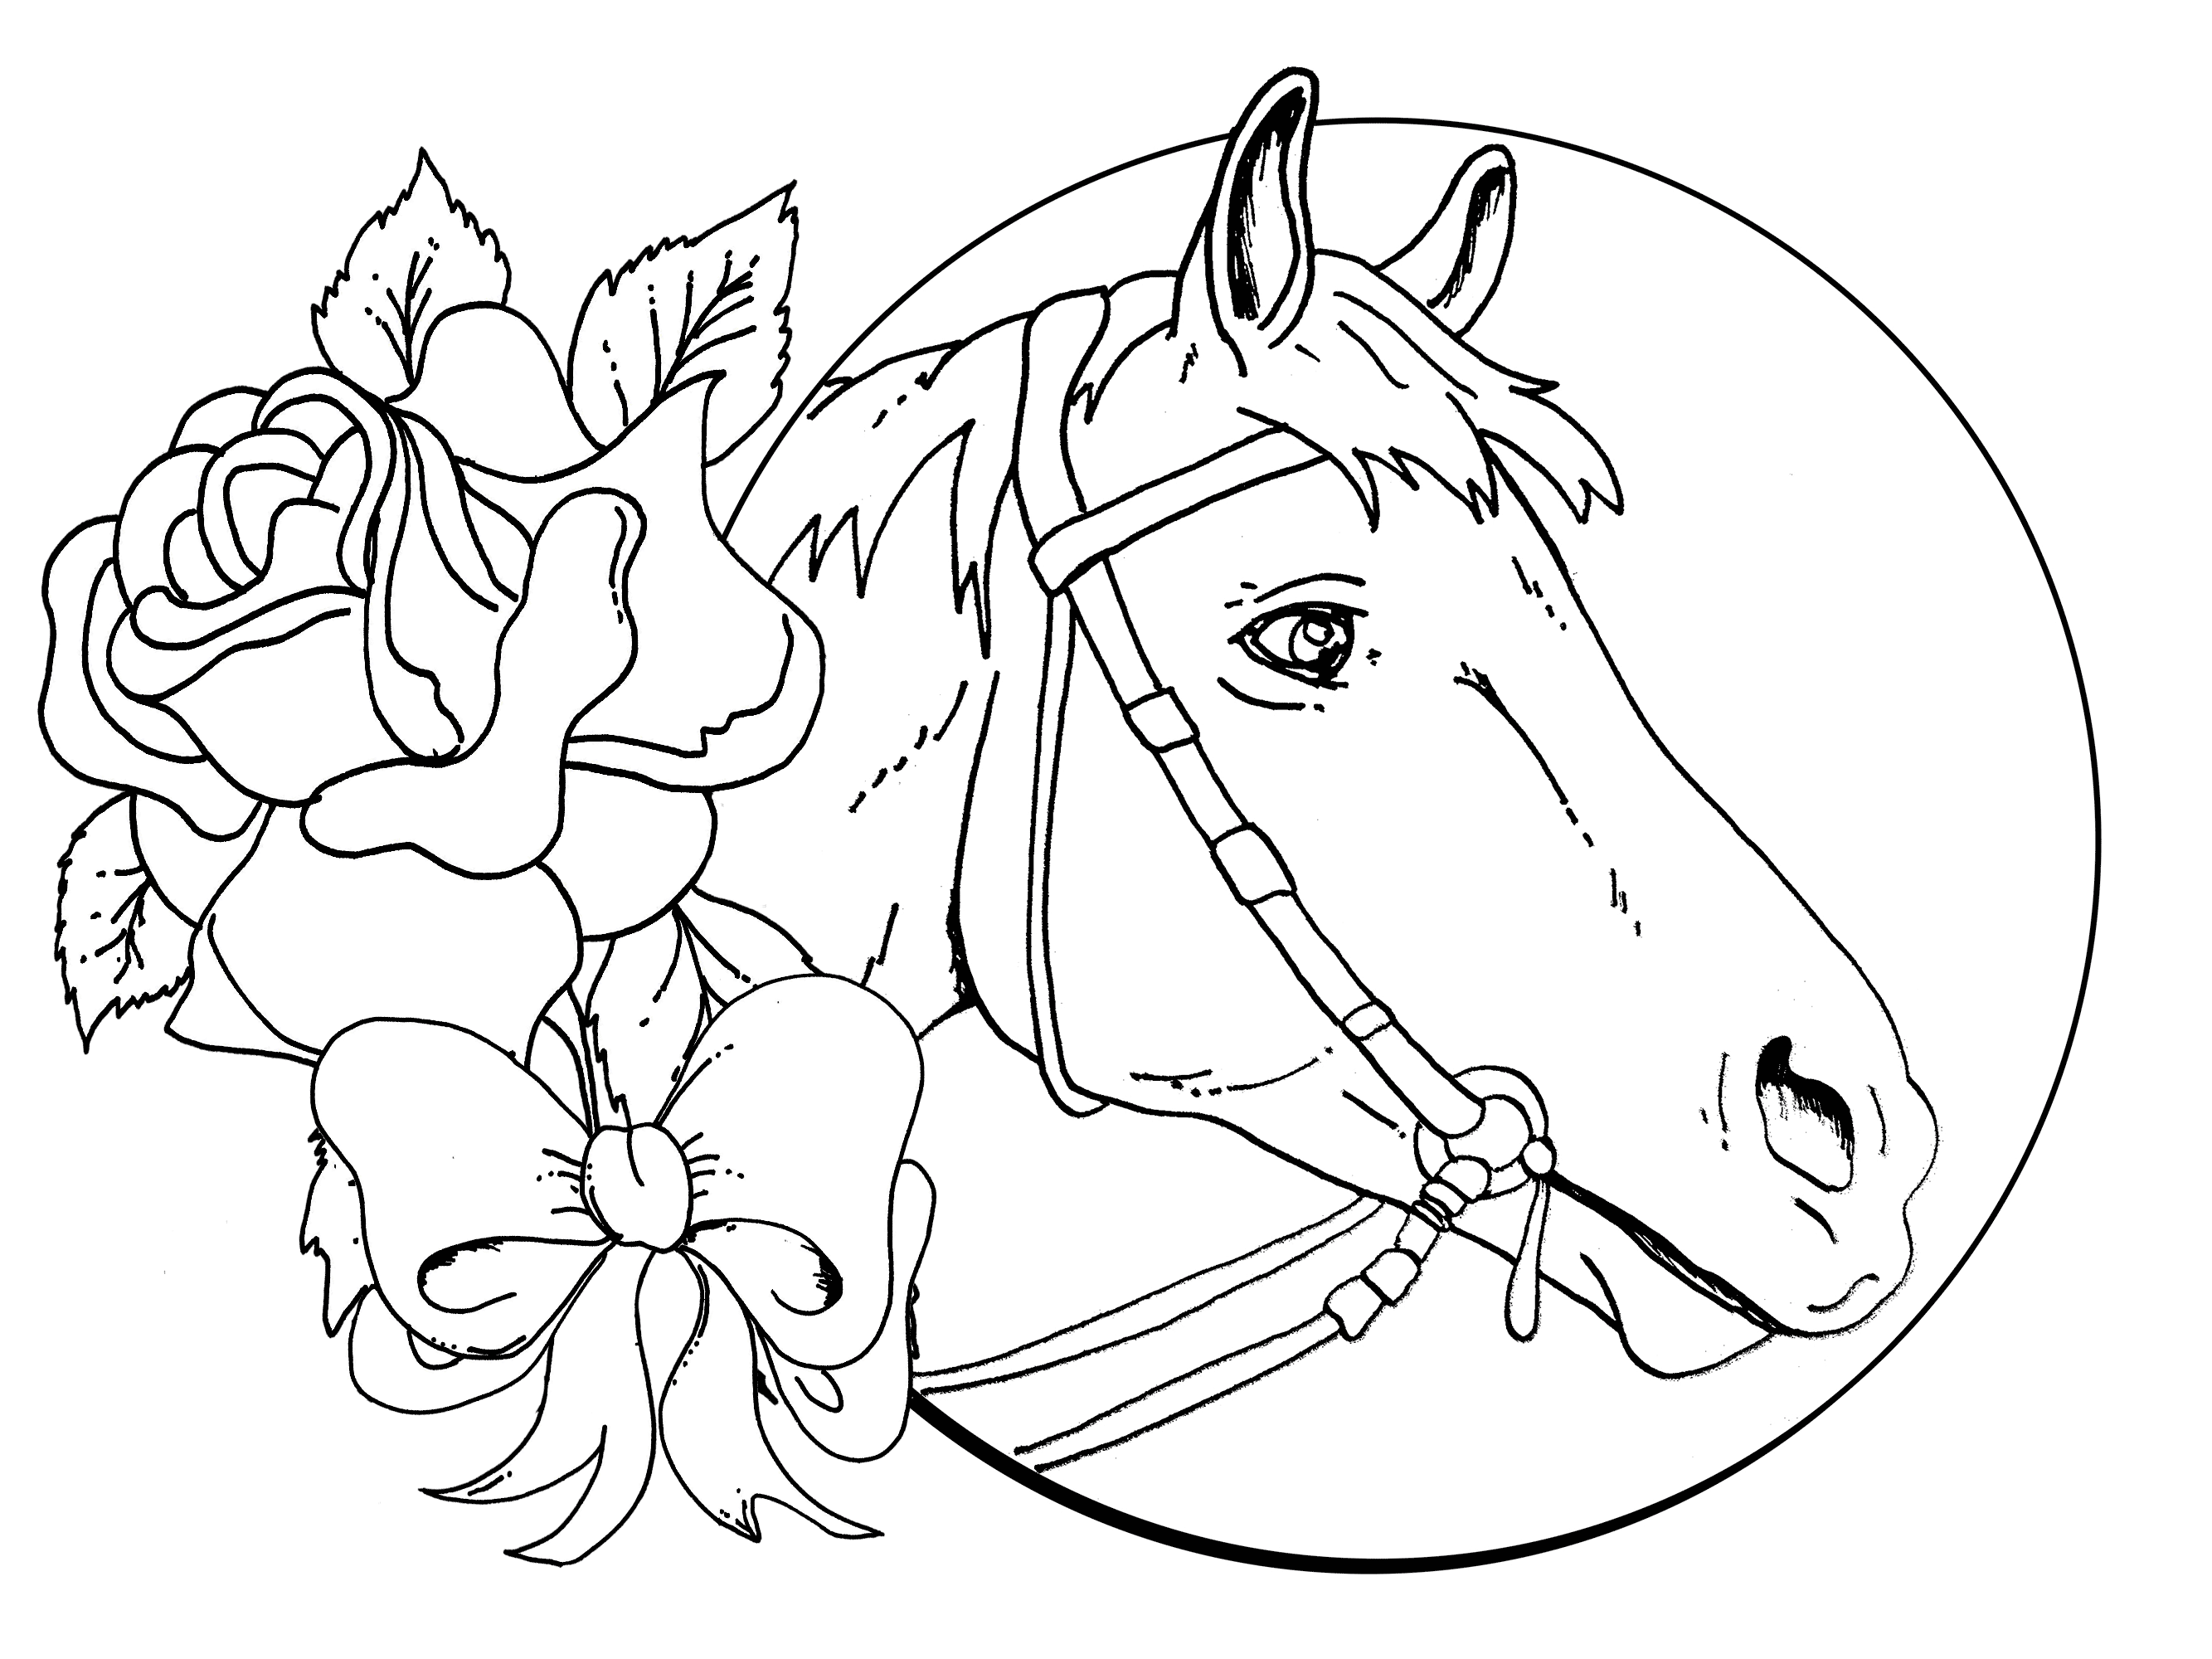 coloring pages for kids - Free Coloring Pages For Girls